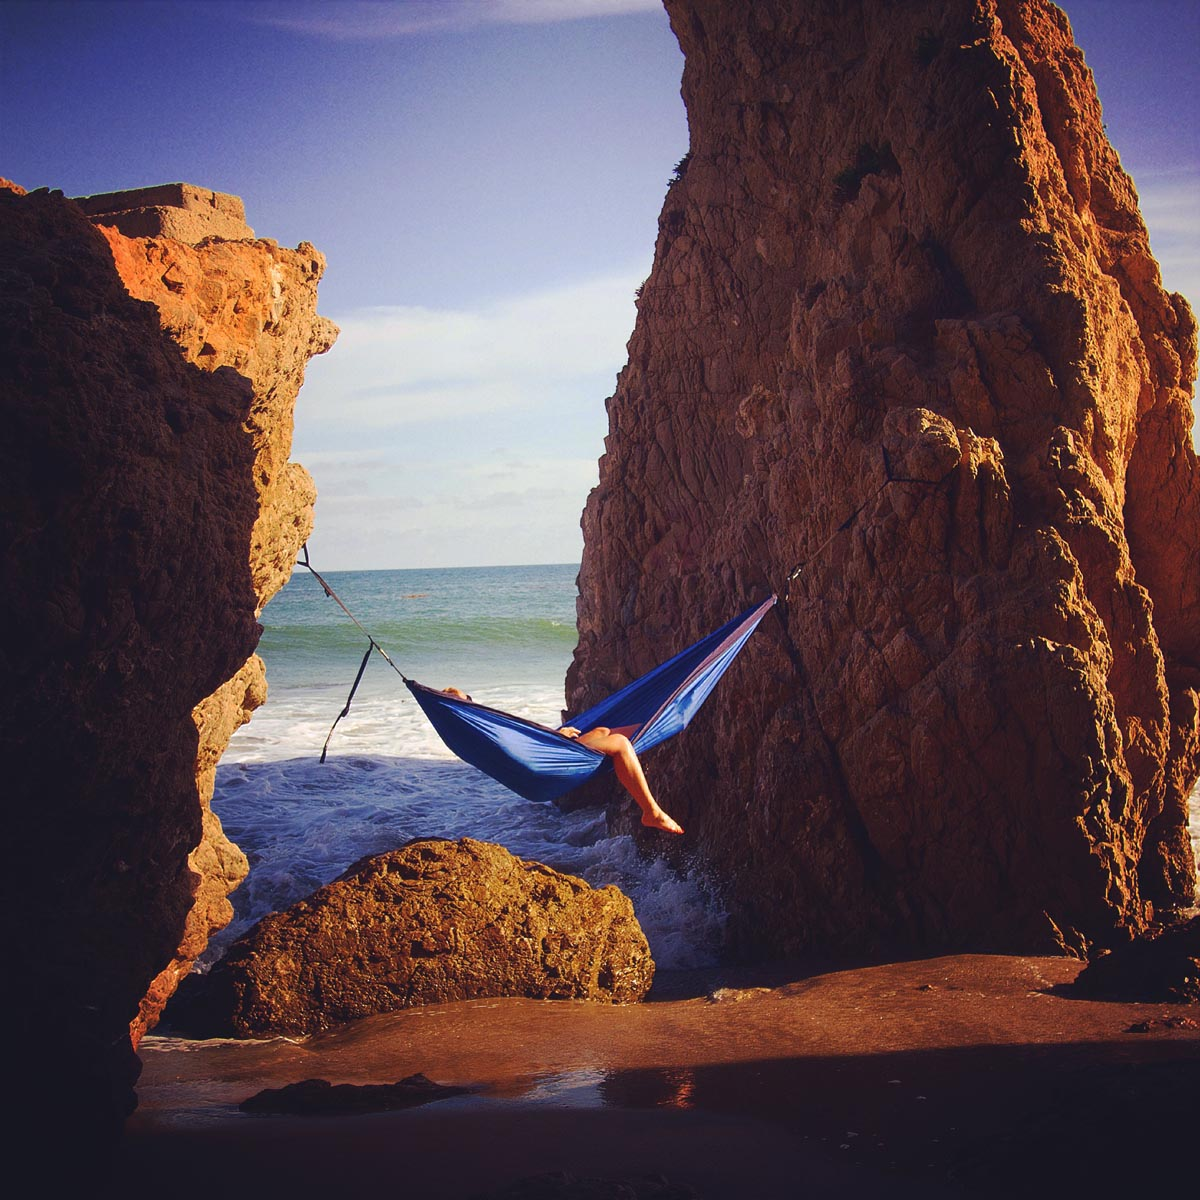 Strodel says Southern California is still one of her favorite places to hang. Photo: Courtesy of @HammockLiving